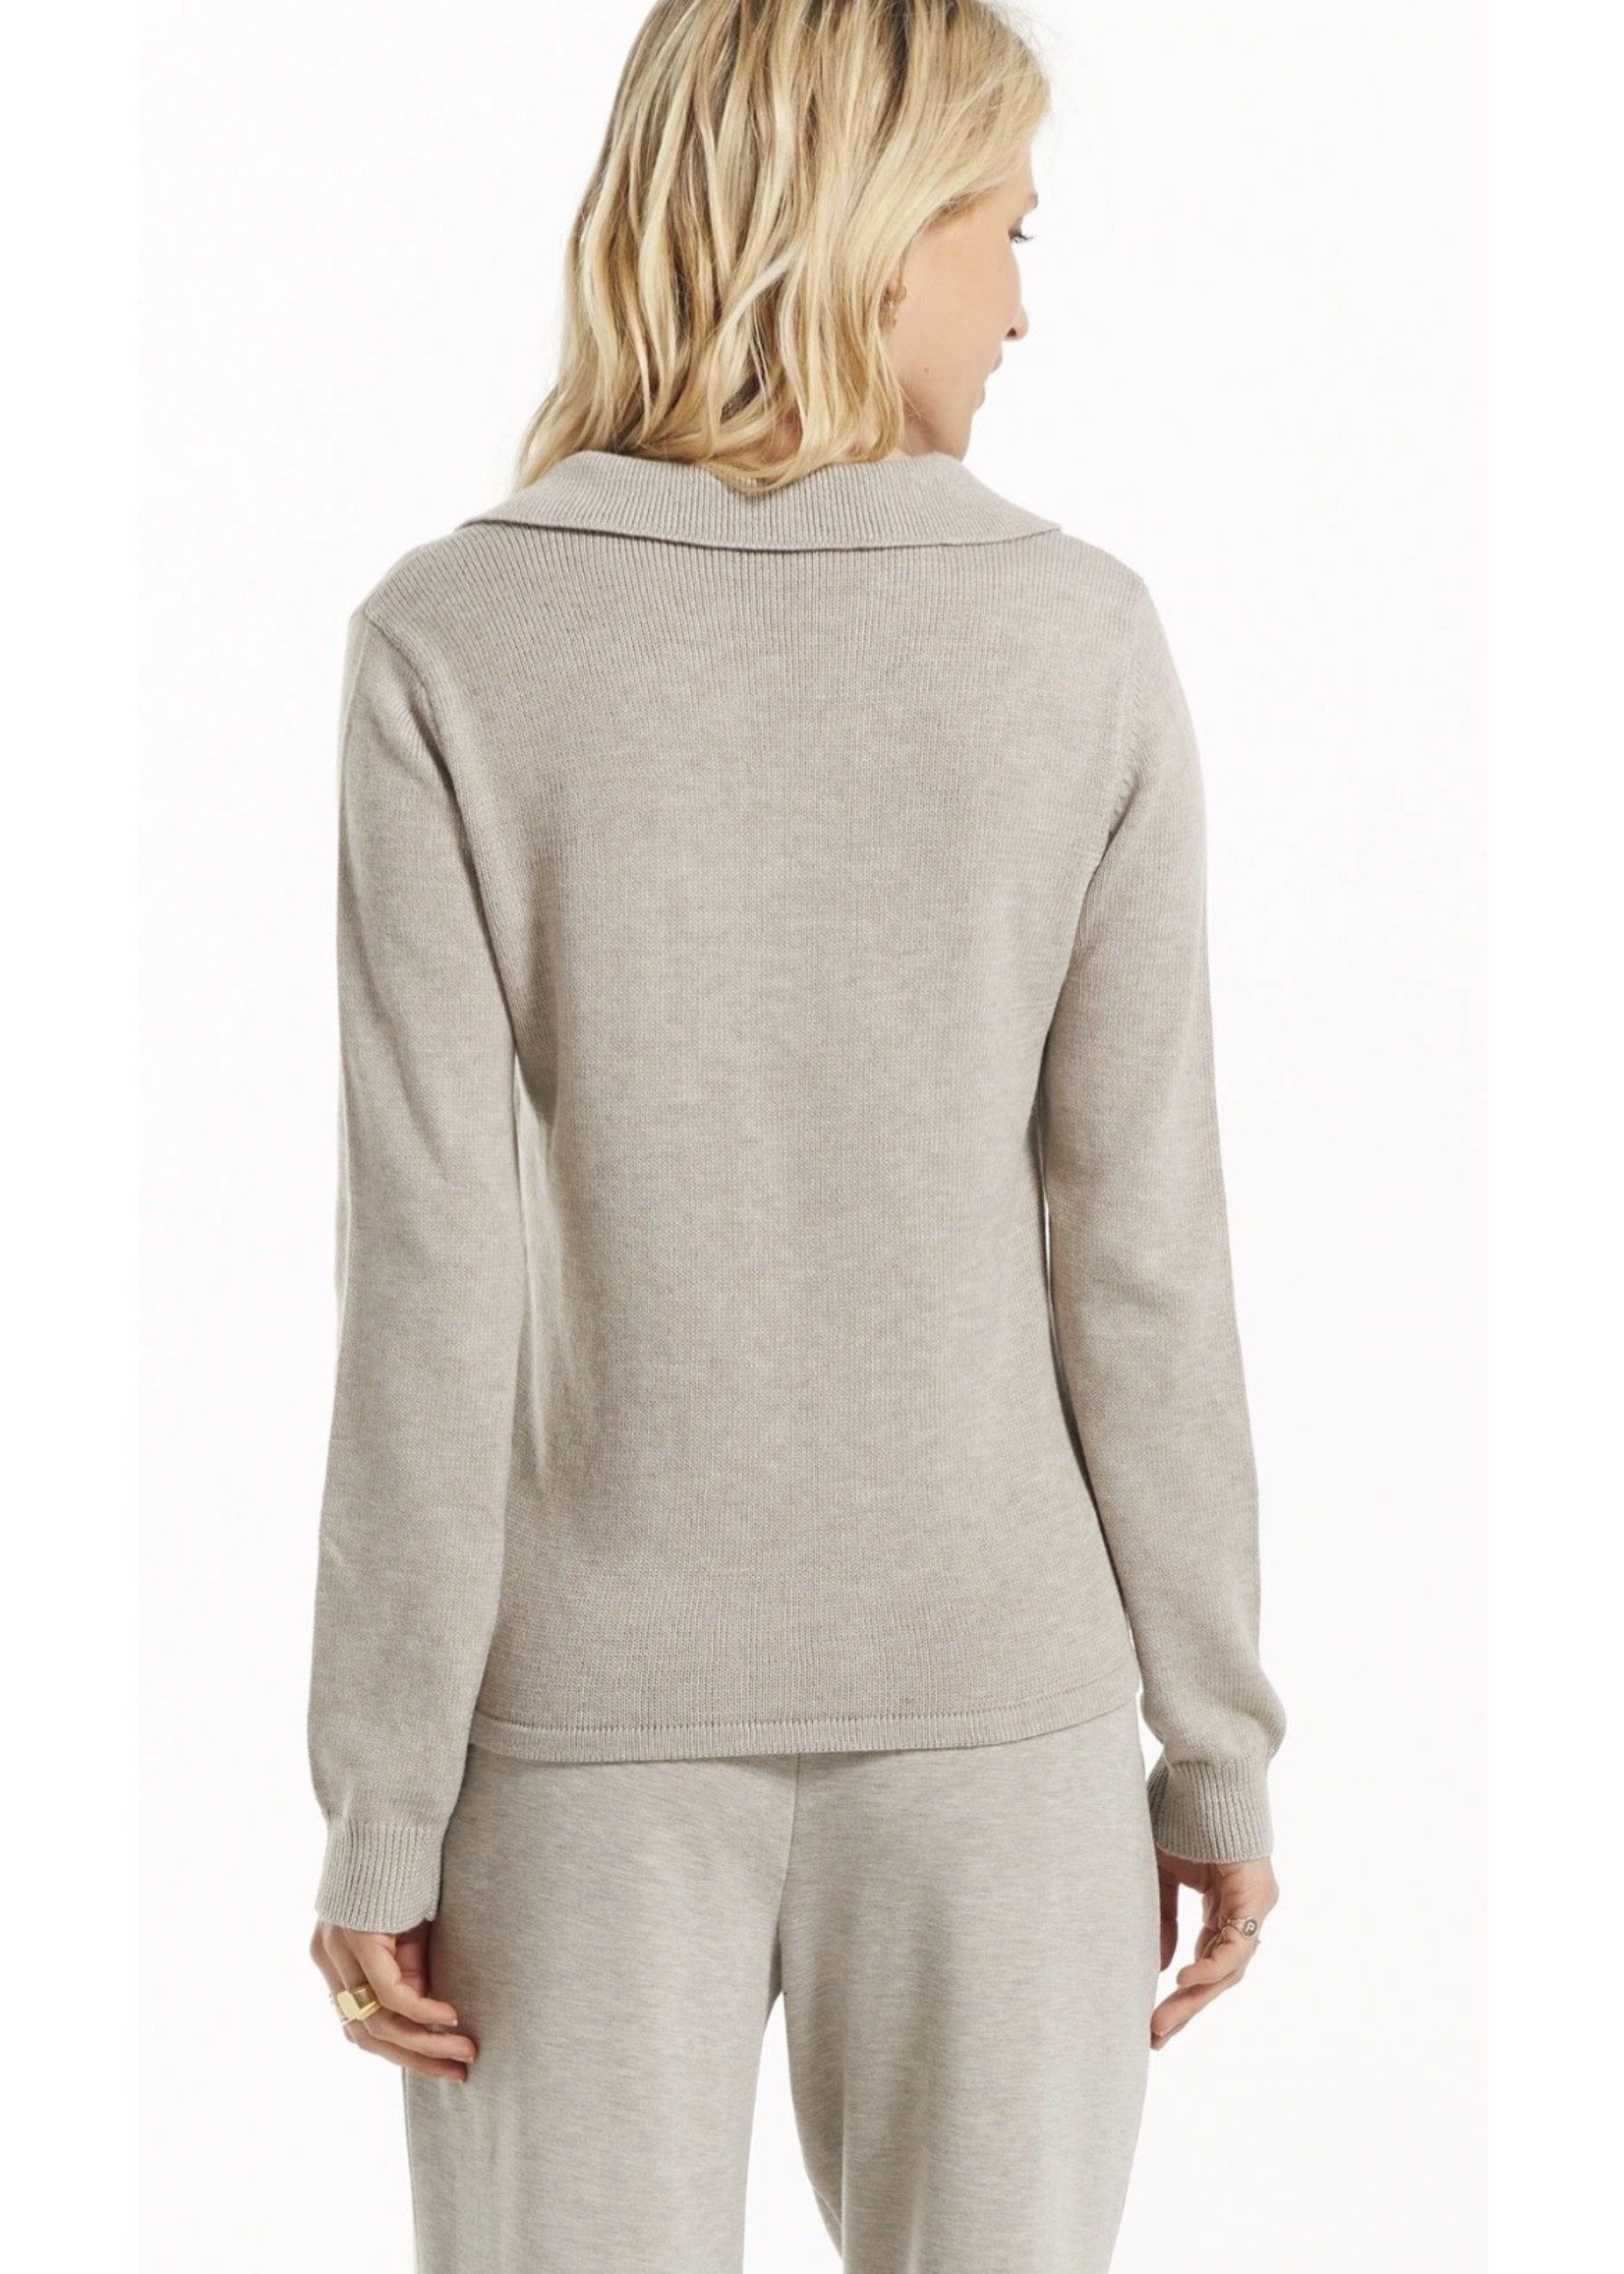 Z Supply WFH Polo Long Sleeved Top - ZW213148